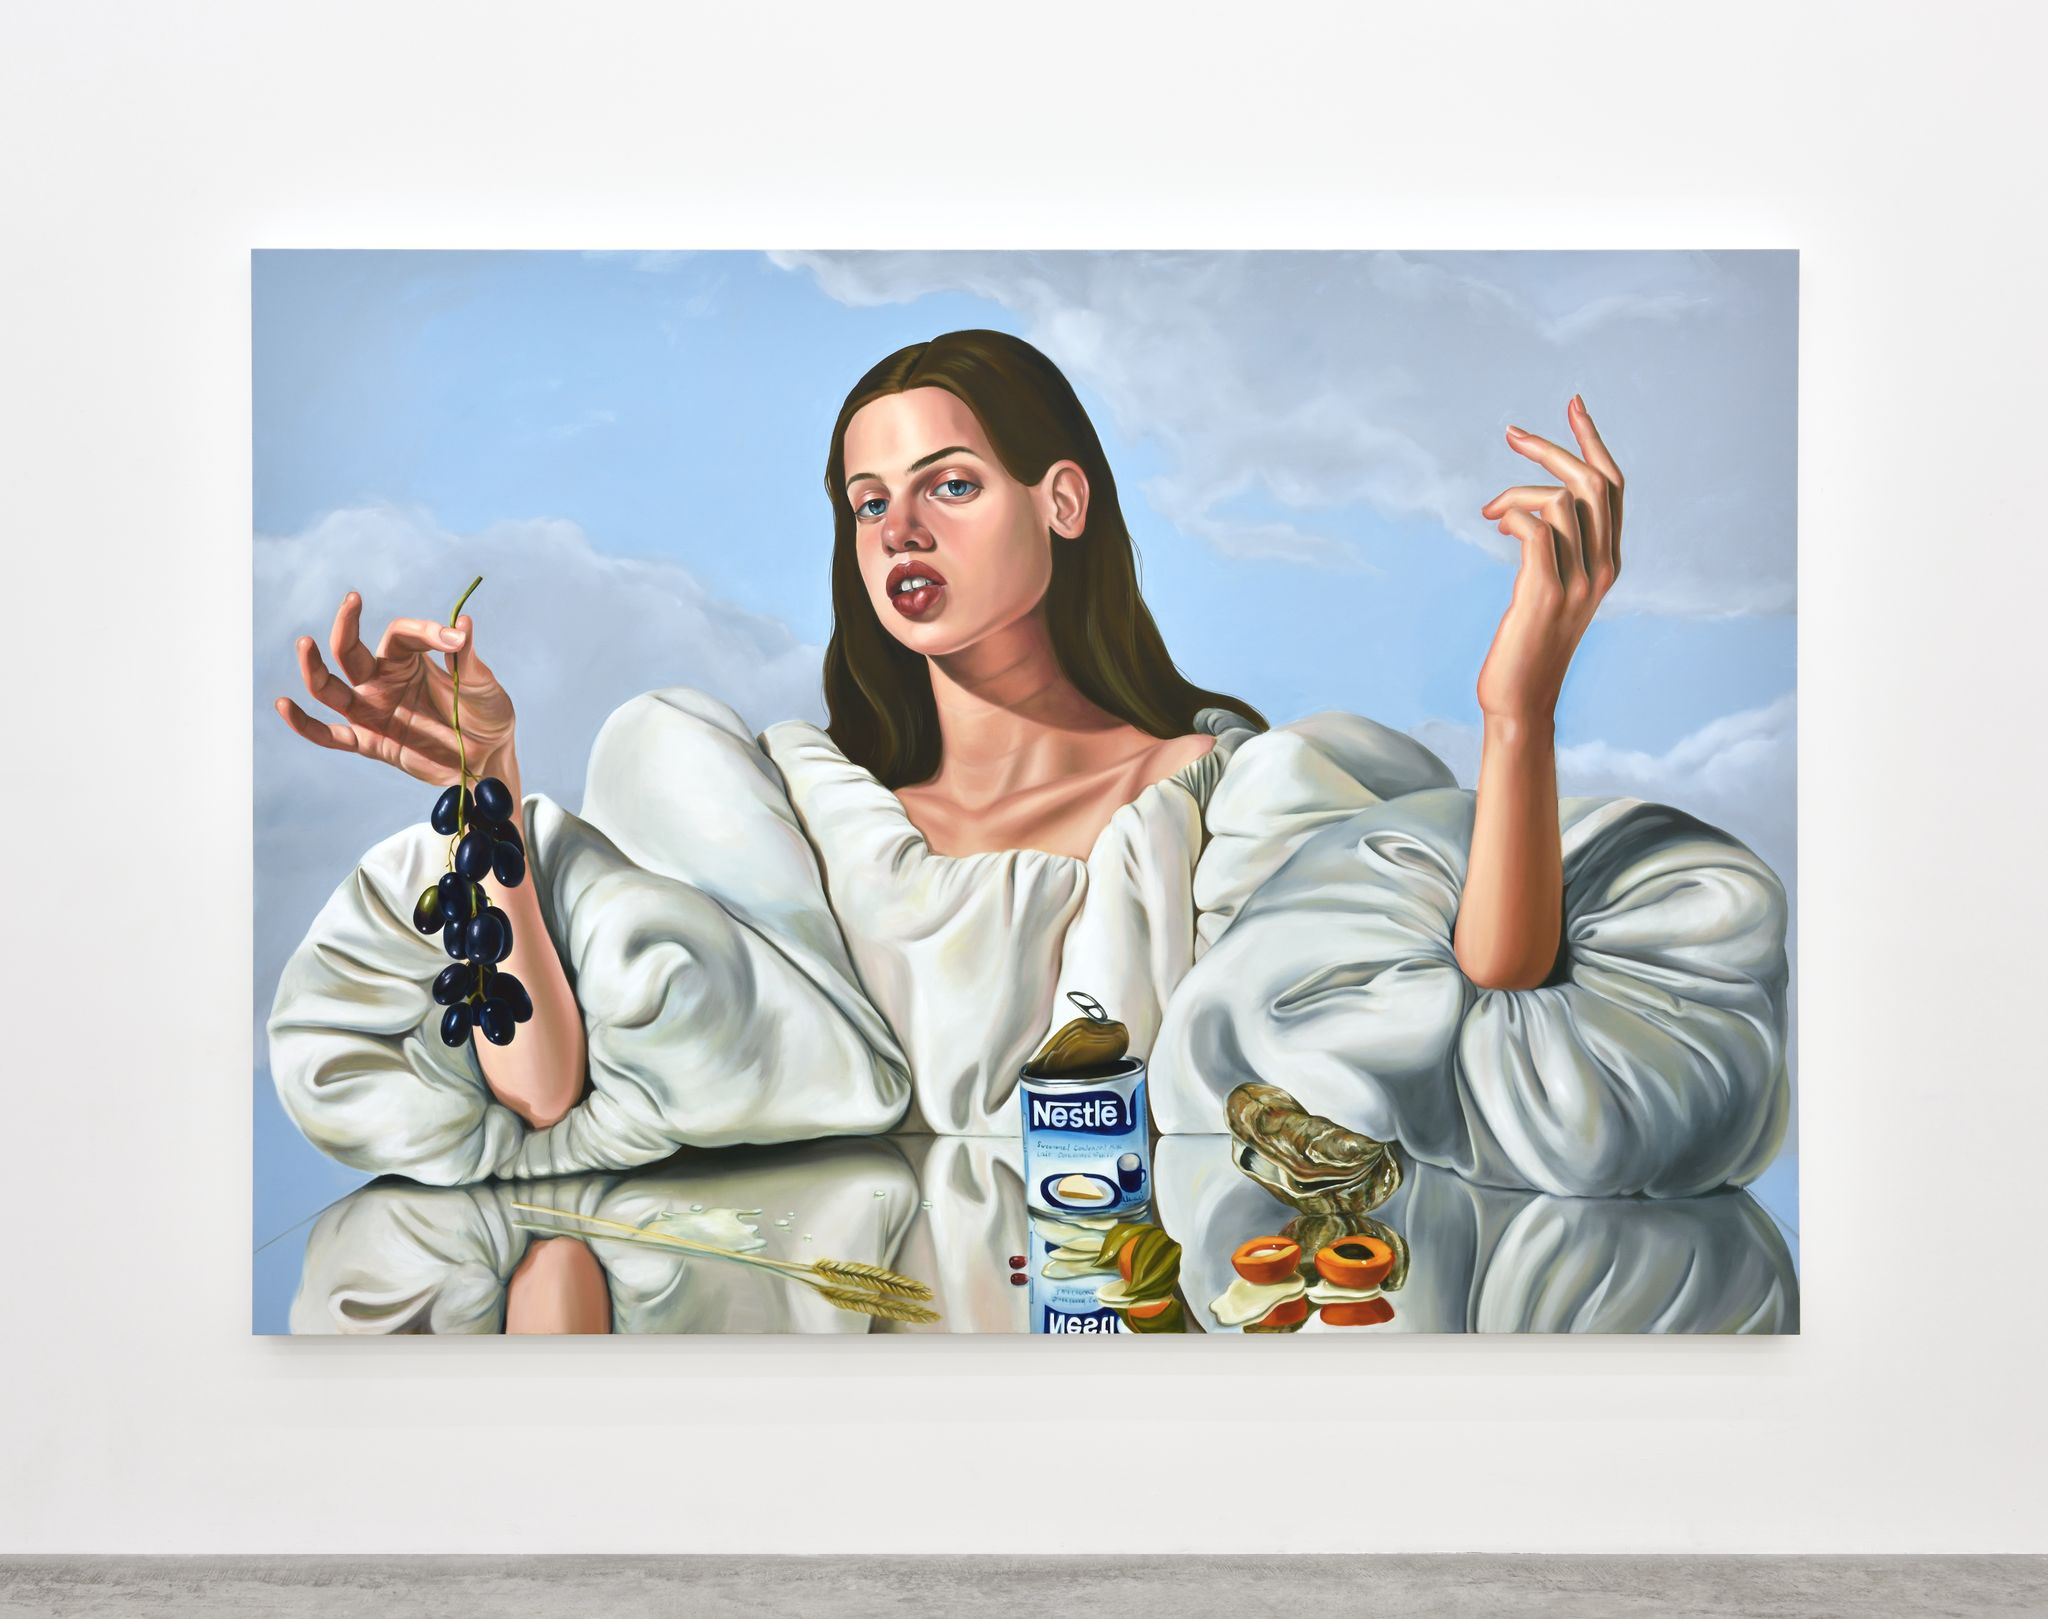 Lactose Tolerance, 2017. Oil on canvas, 210 x 300 cm